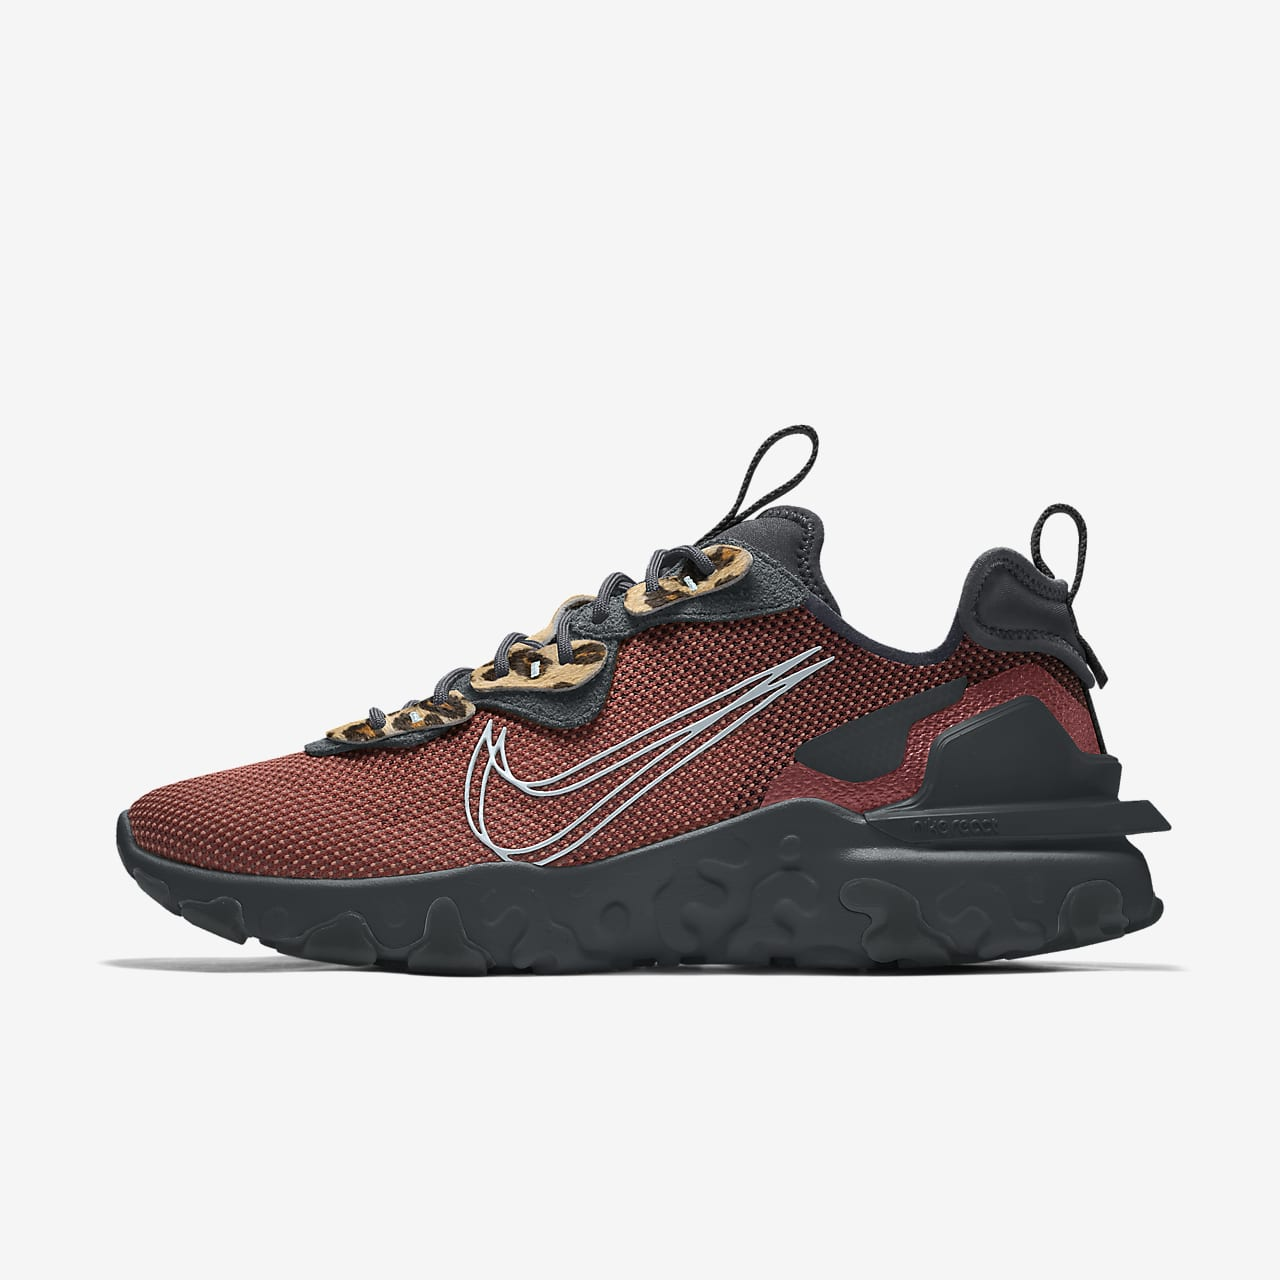 Chaussure lifestyle personnalisable Nike React Vision By You pour Homme